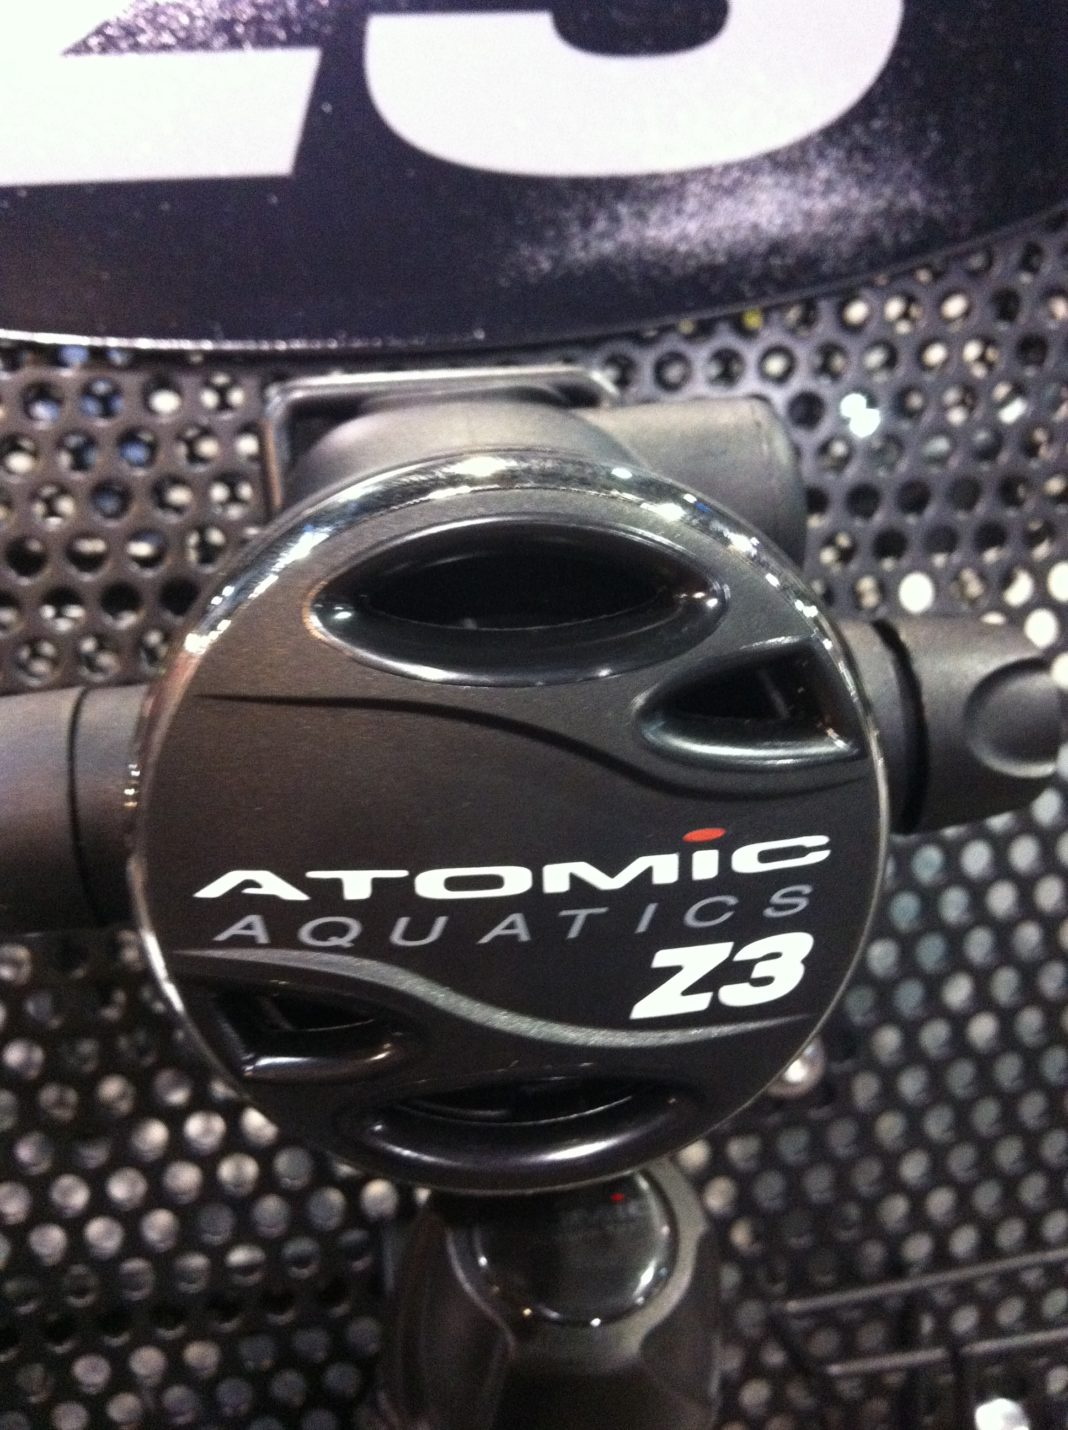 DEMA Show 2012: Atomic Aquatics Unveils New Z3 Regulator For Budget Divers 3